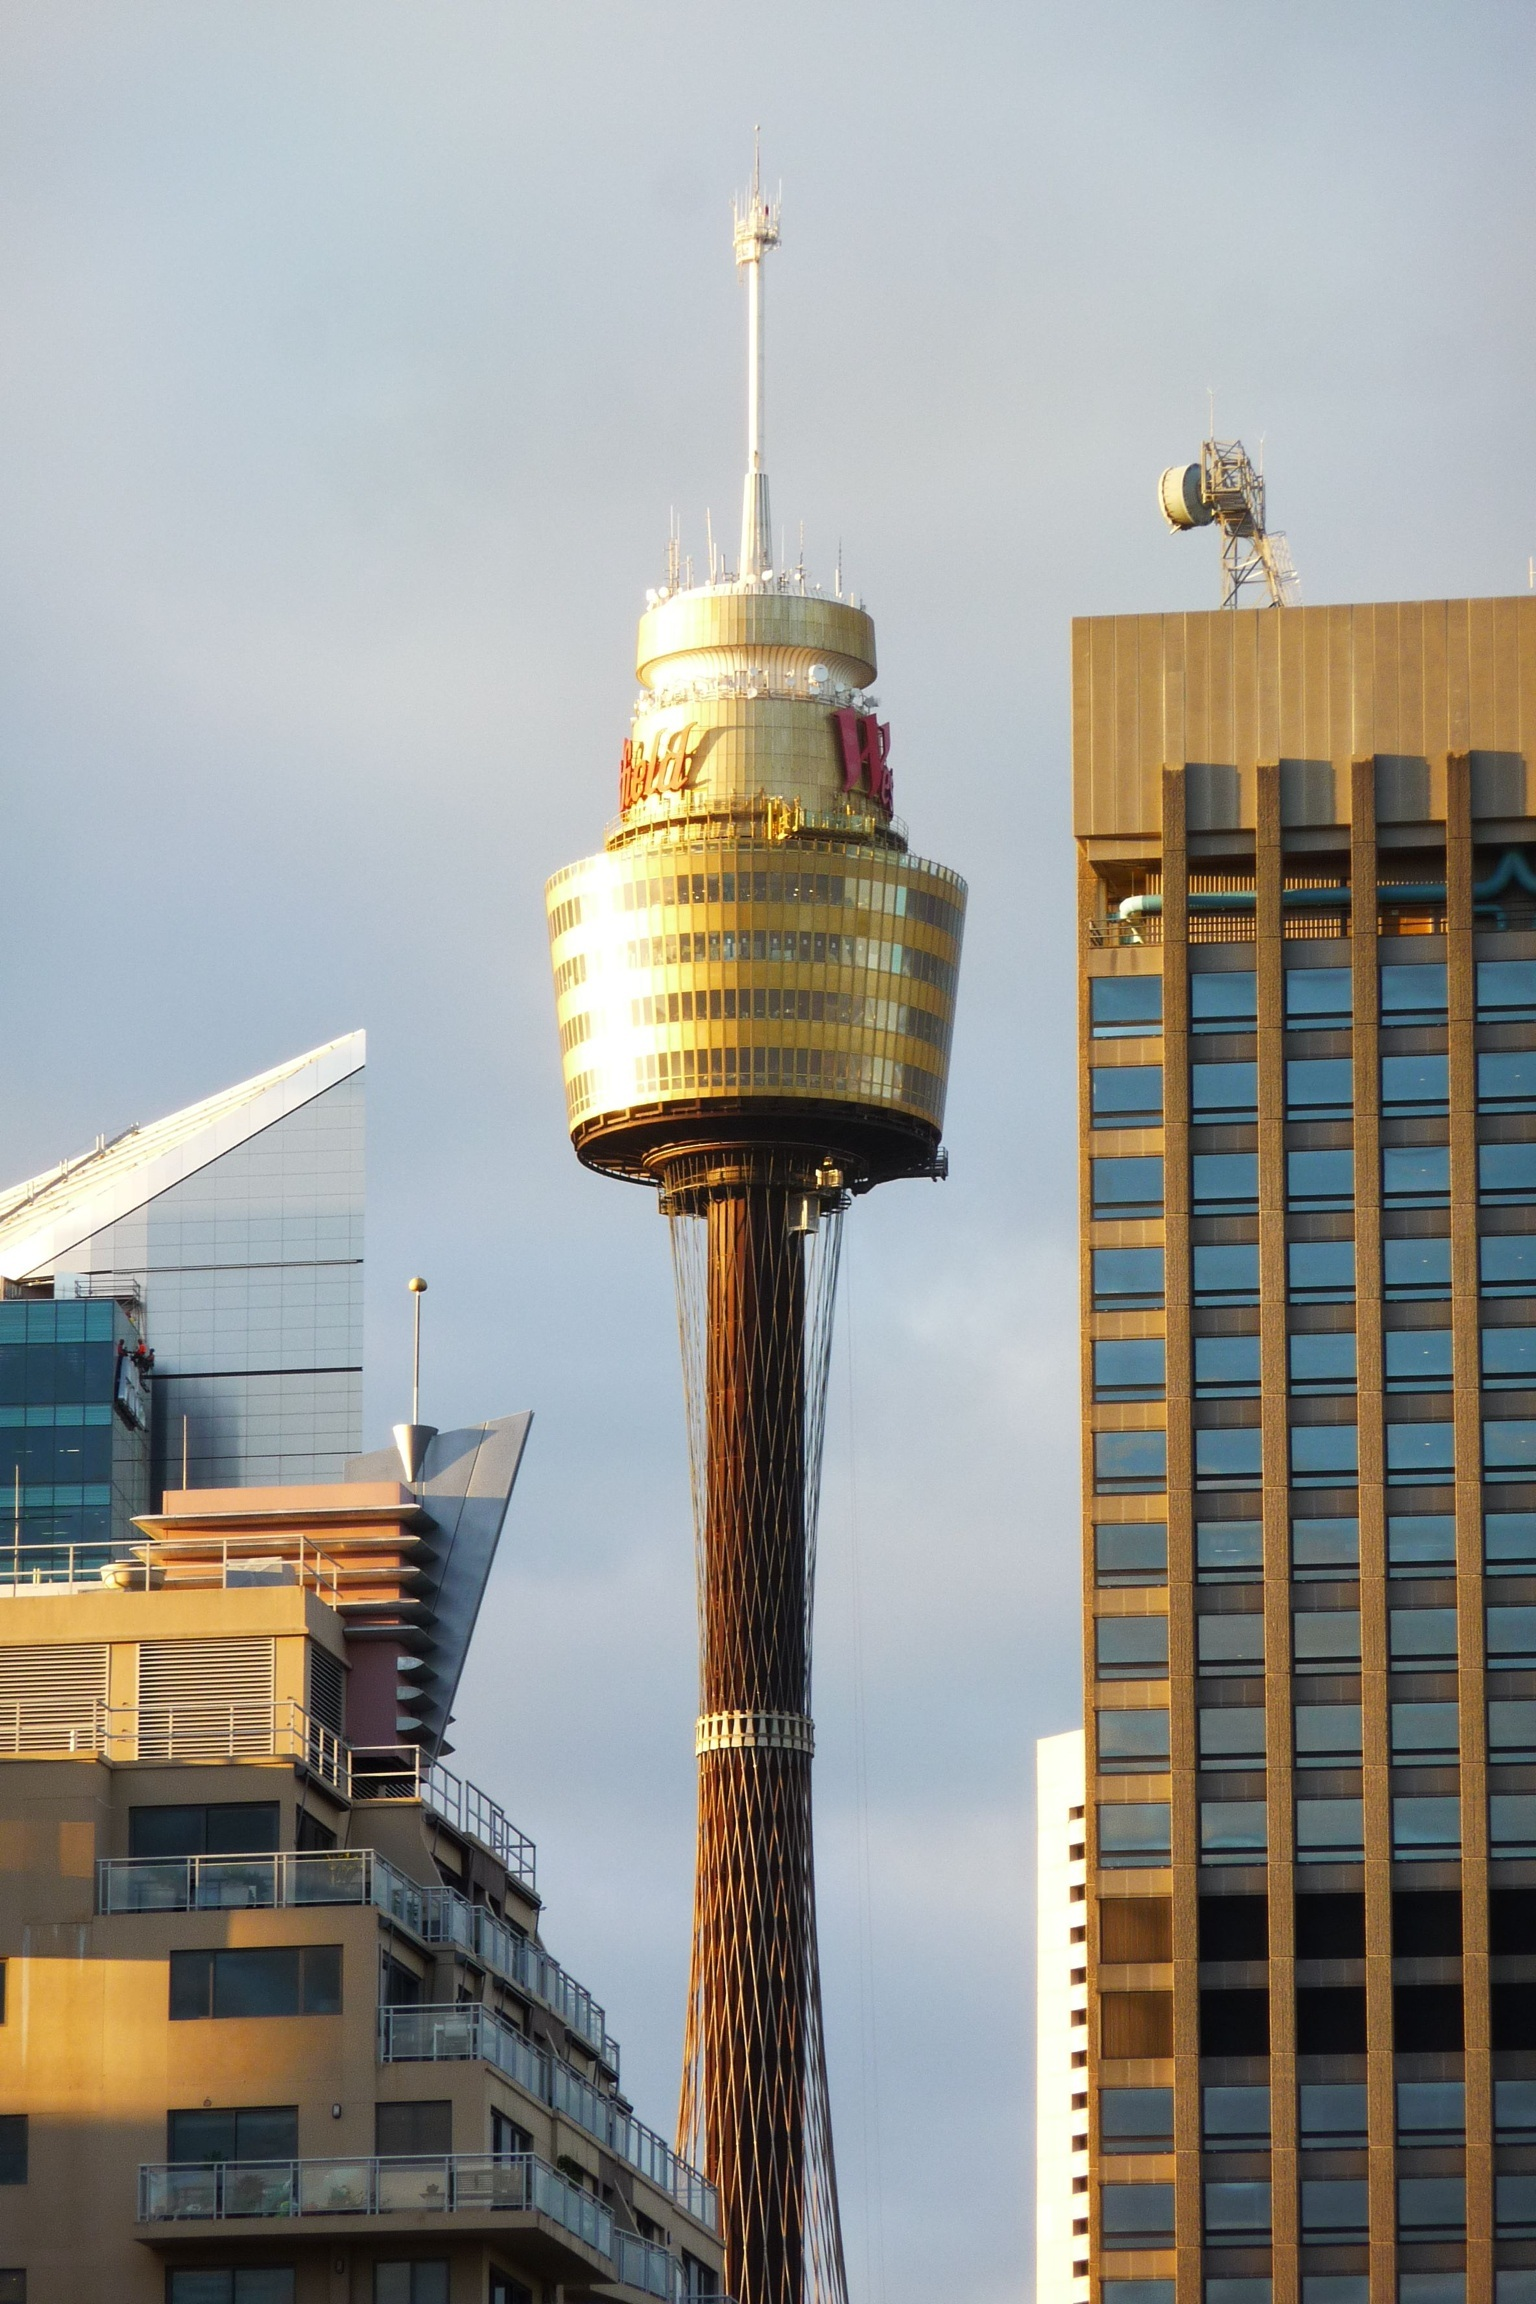 Iphone X Stock Wallpaper Free Stock Photo Of Sydney Tv Tower View